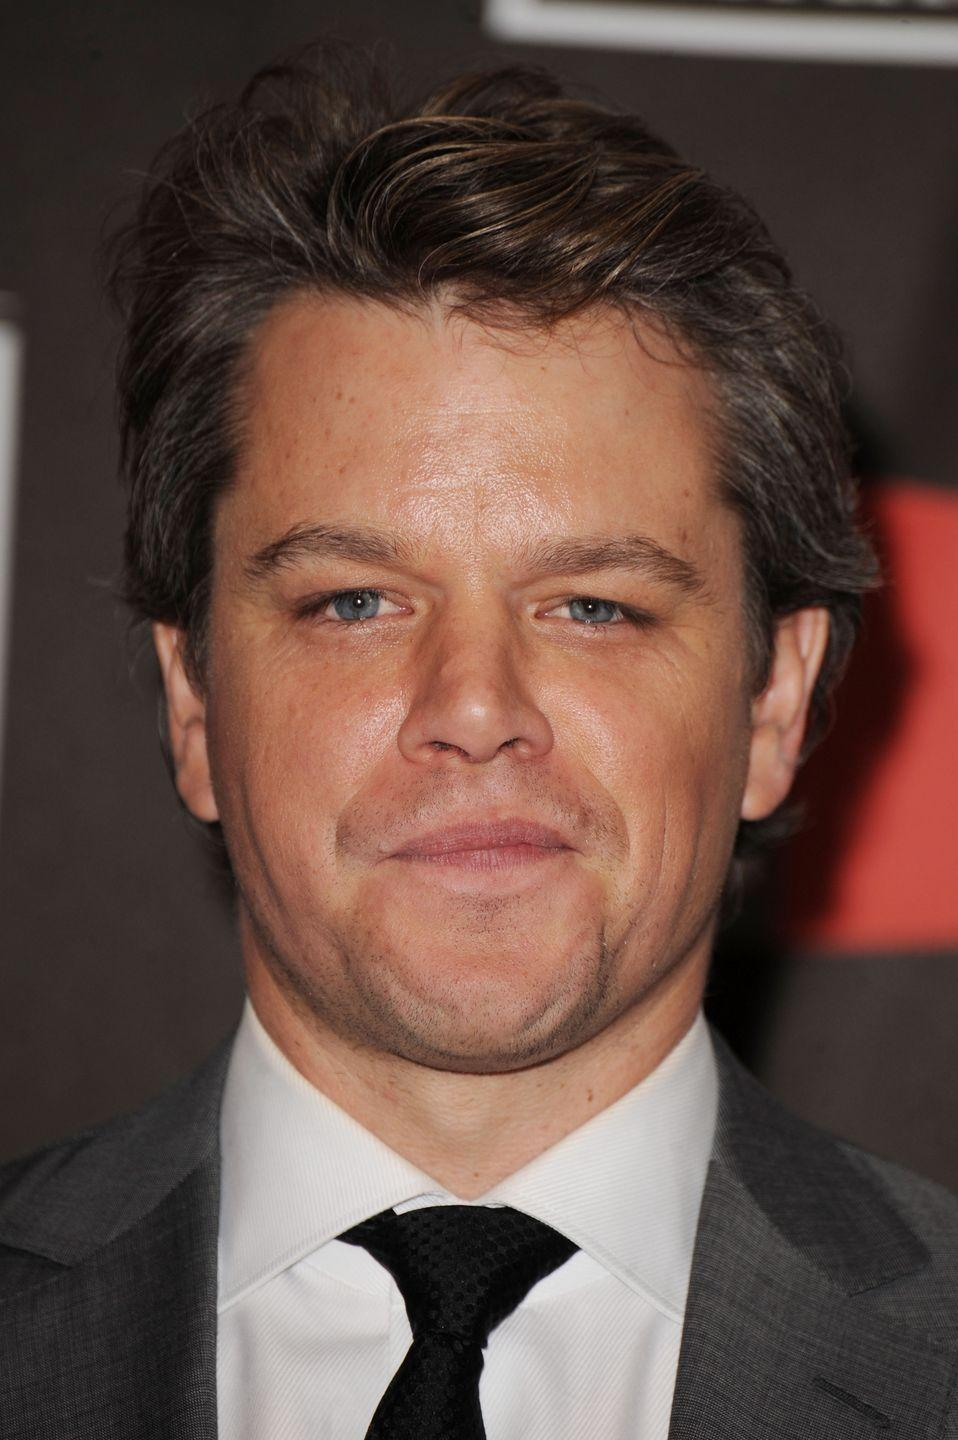 <p>Even since his <em>Good Will Hunting </em>days, Matt Damon has kept his hairstyle pretty consistent with a variation of short, polished cuts. </p>